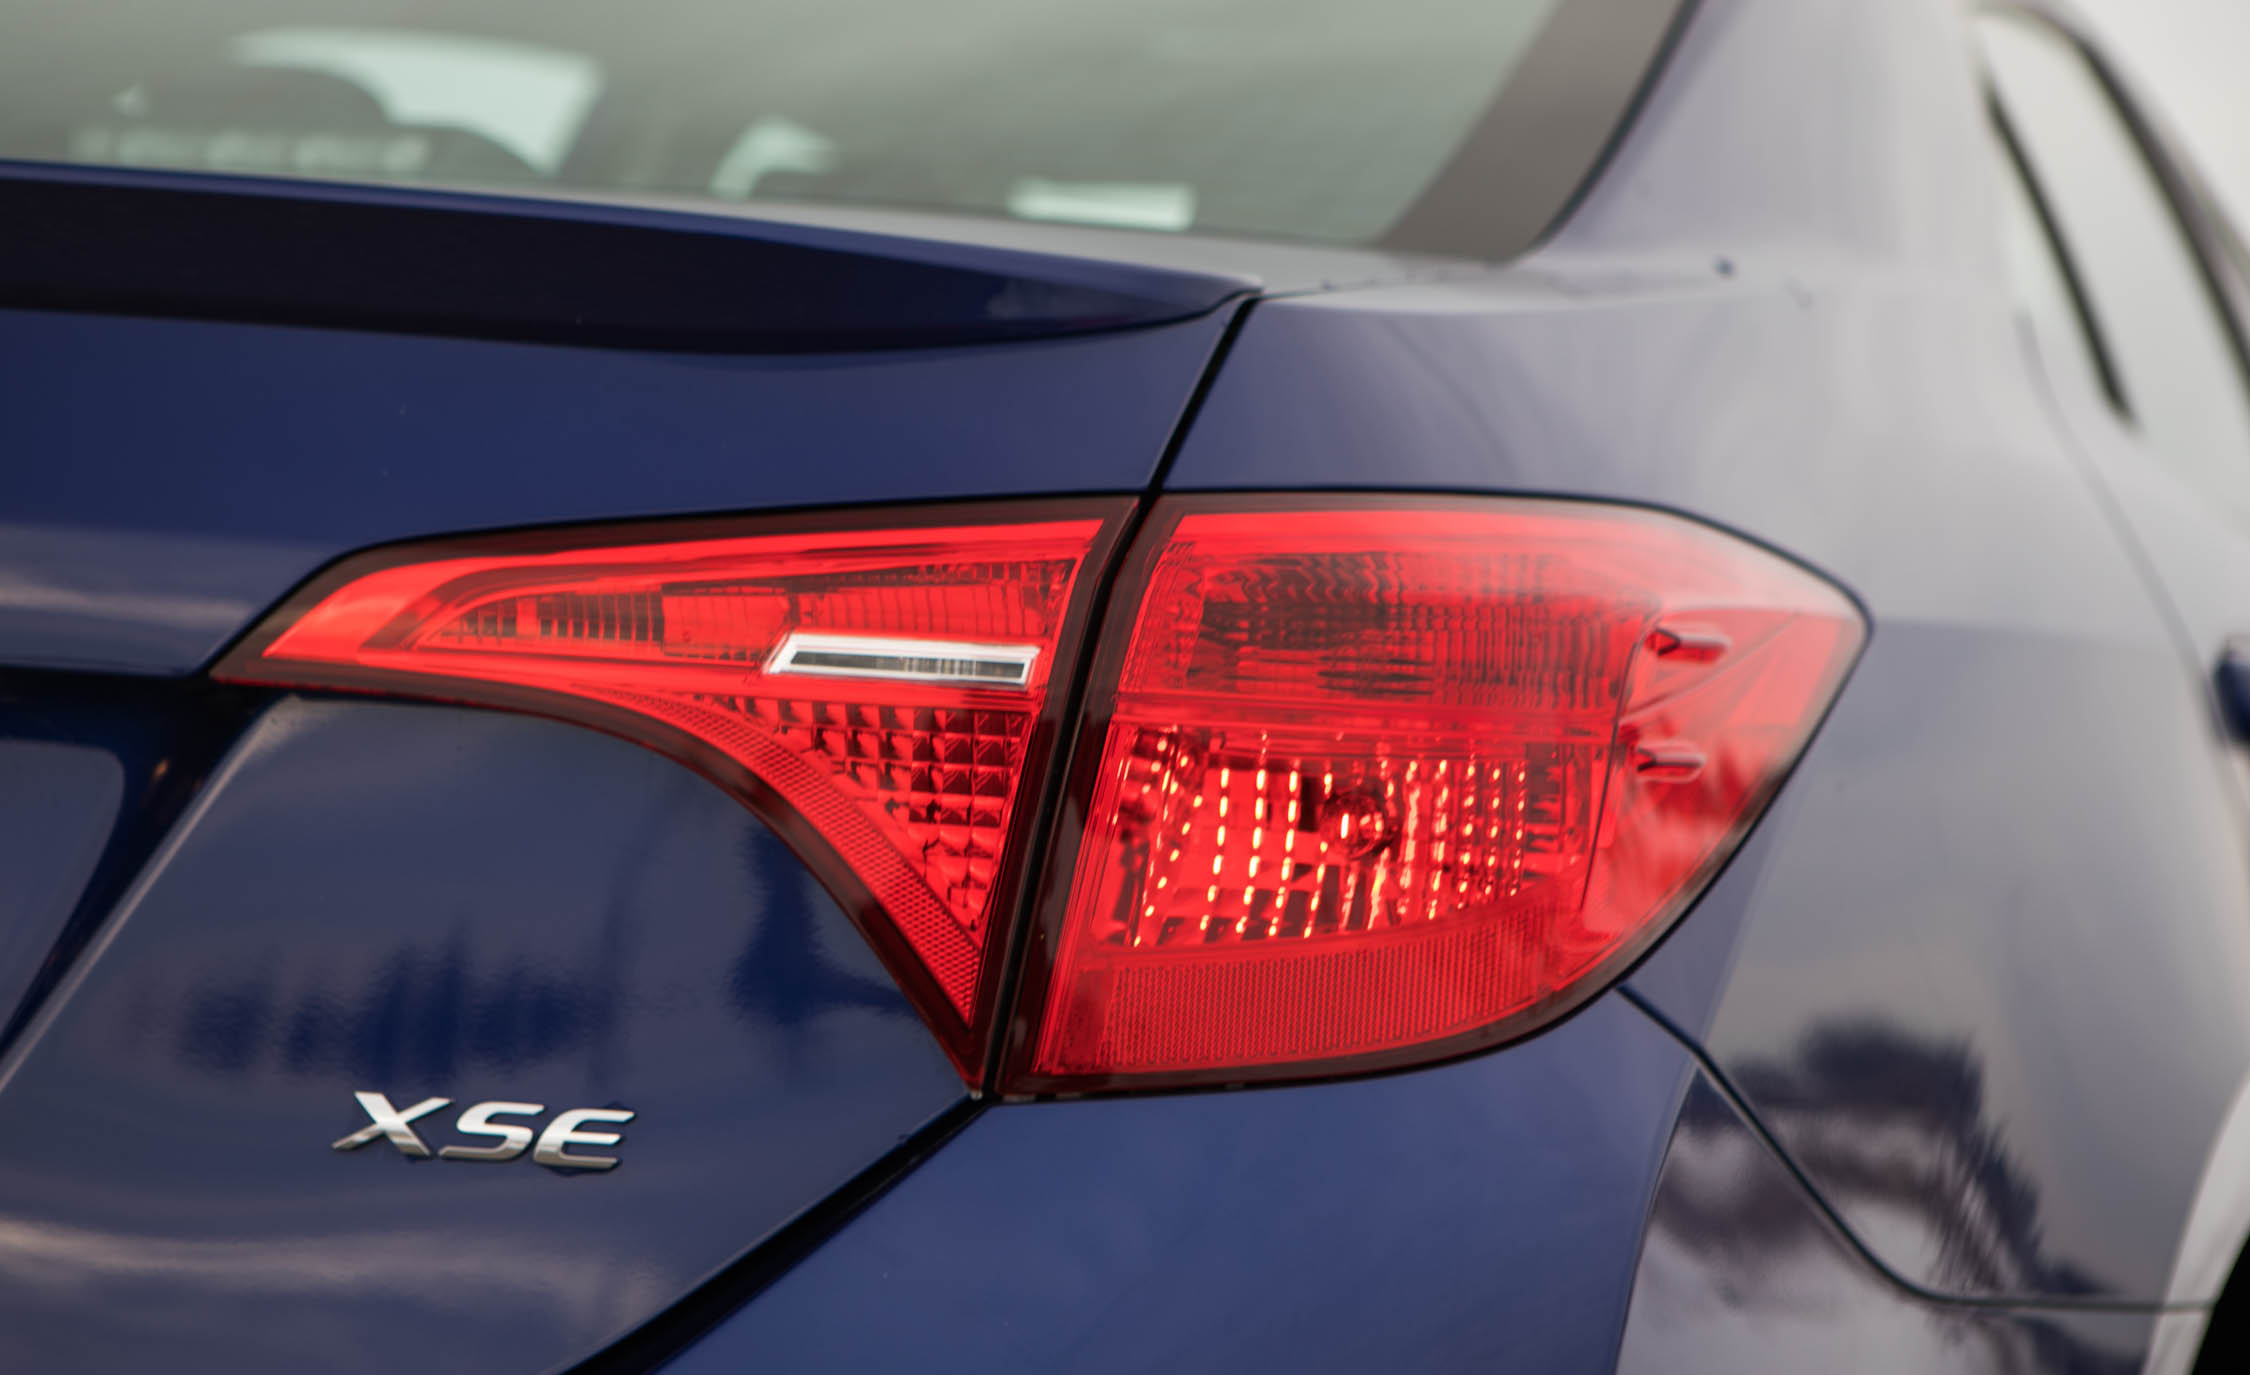 2017 Toyota Corolla XSE Exterior View Taillight (Photo 47 of 75)